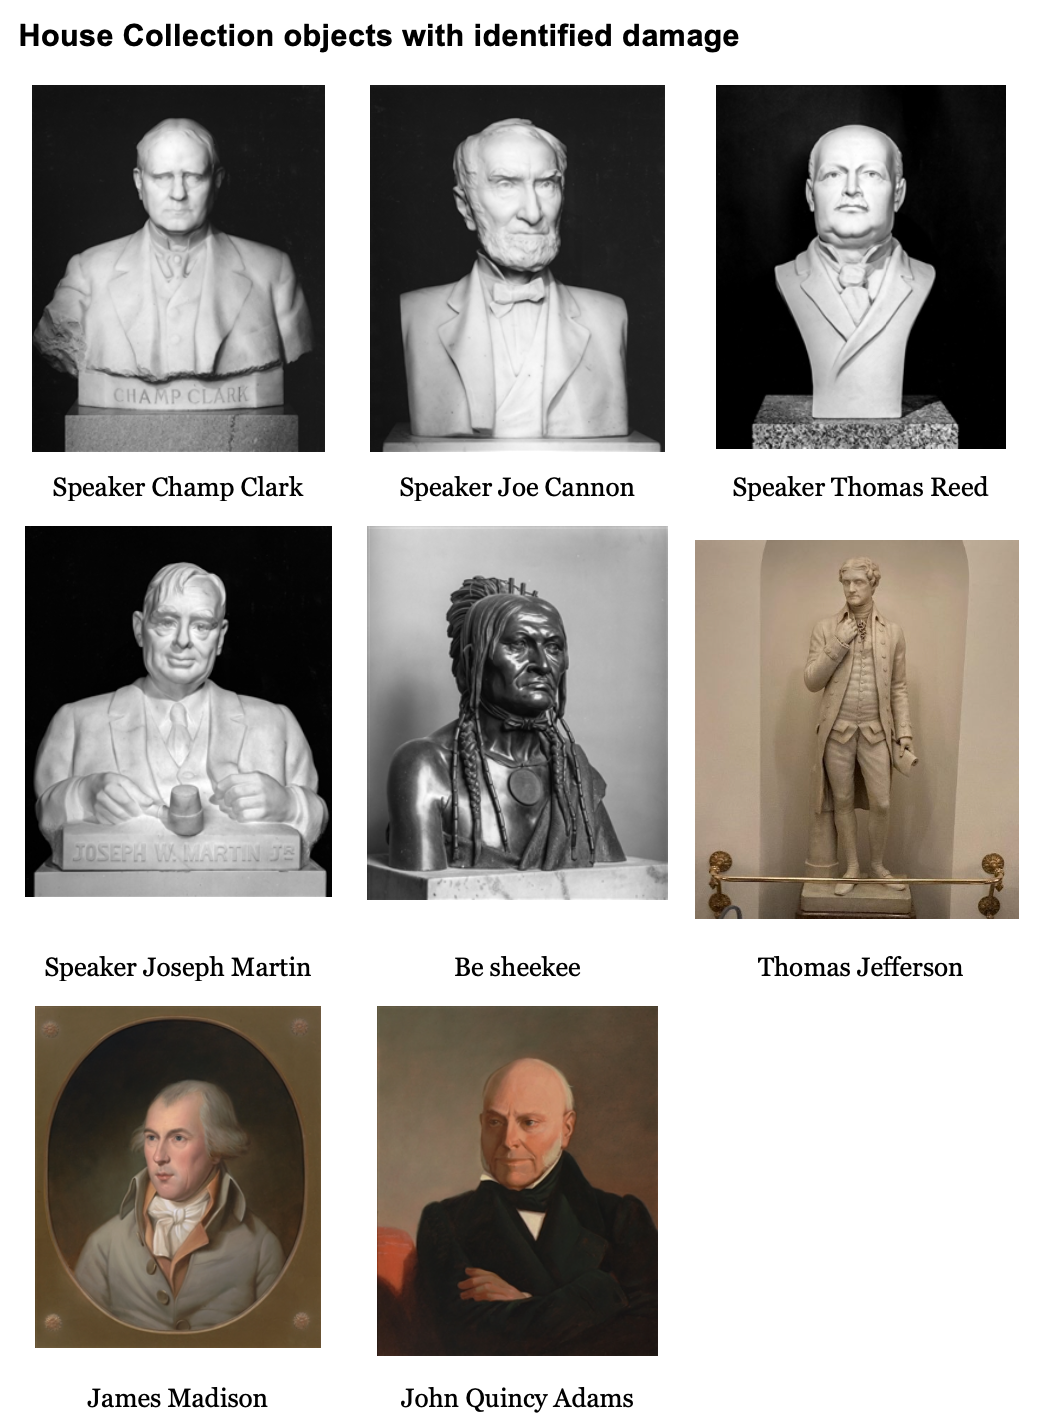 A list of 8 works with photos attached, including four white marble busts, a bronze bust of a Chippewa statesman Be shekee, a standing sculpture of Thomas Jefferson and two painted portraits of James Madison and John Quincy Adams